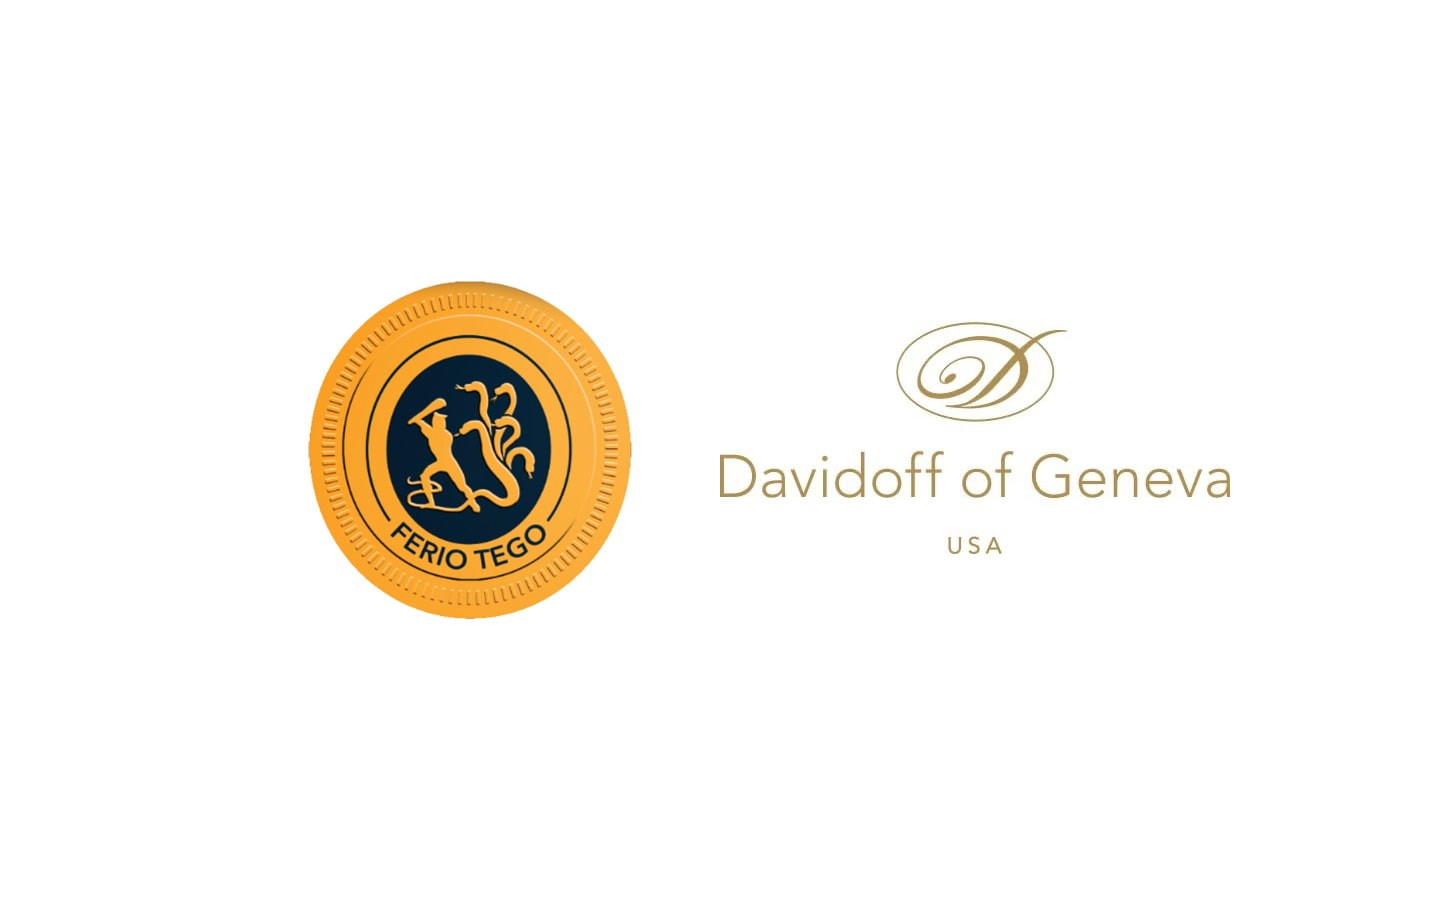 Davidoff to Distribute Herklots New Ferio Tego Brand in the USA Featured Image